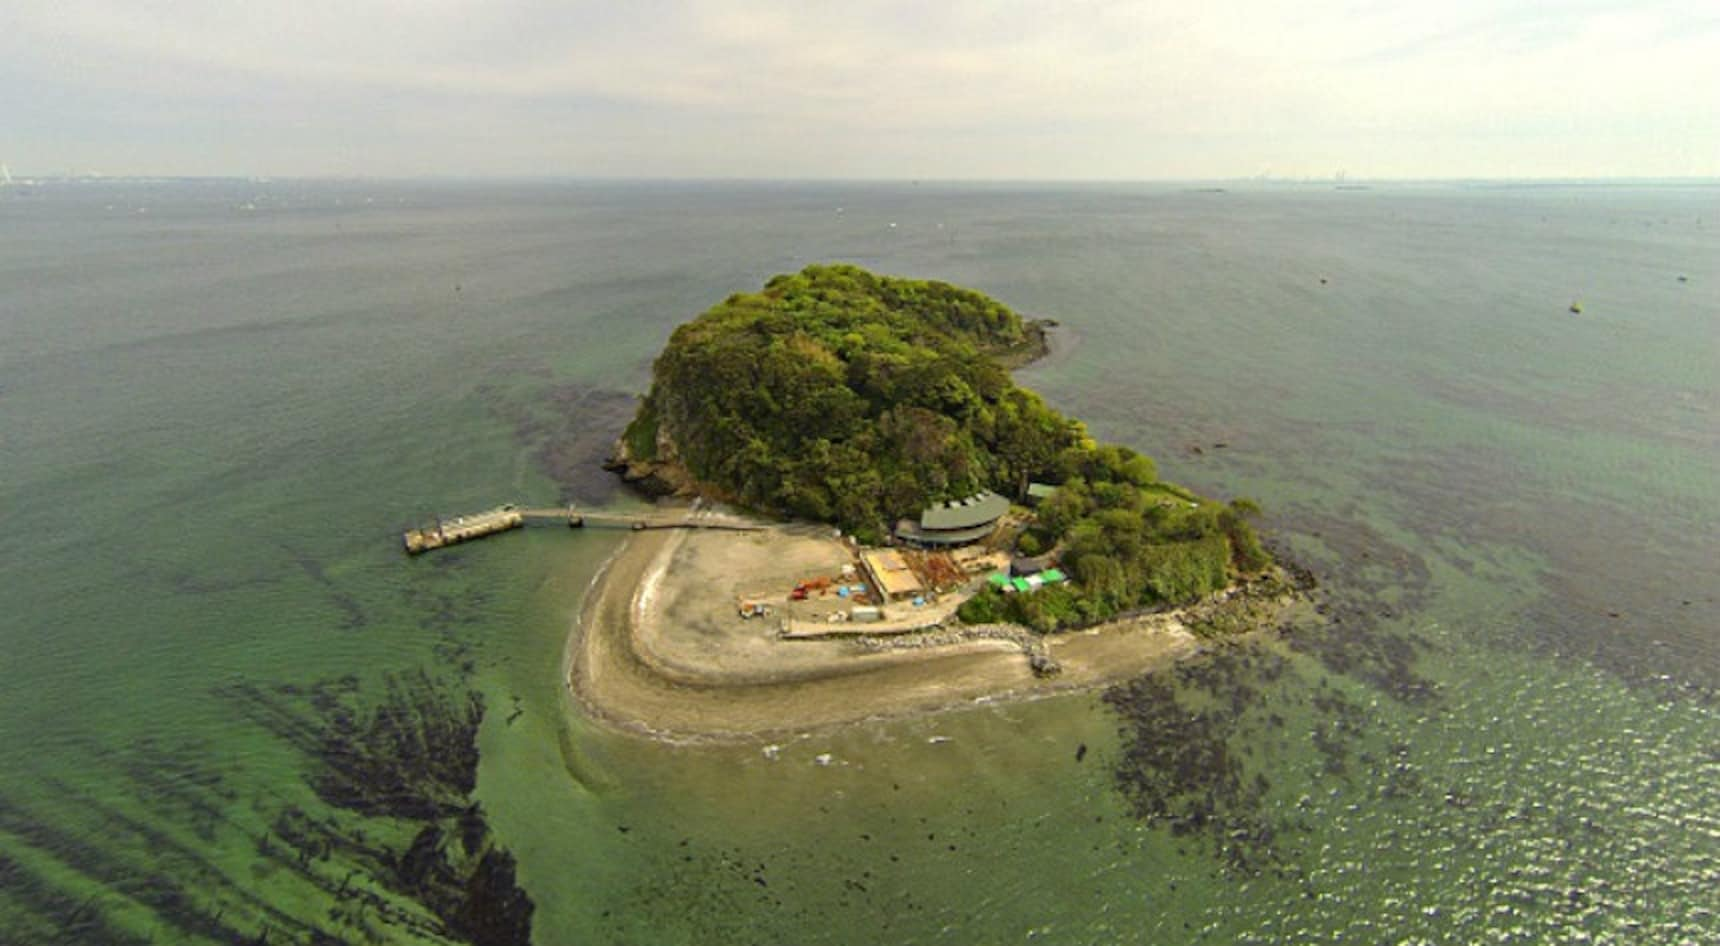 Rent an Island for a Day